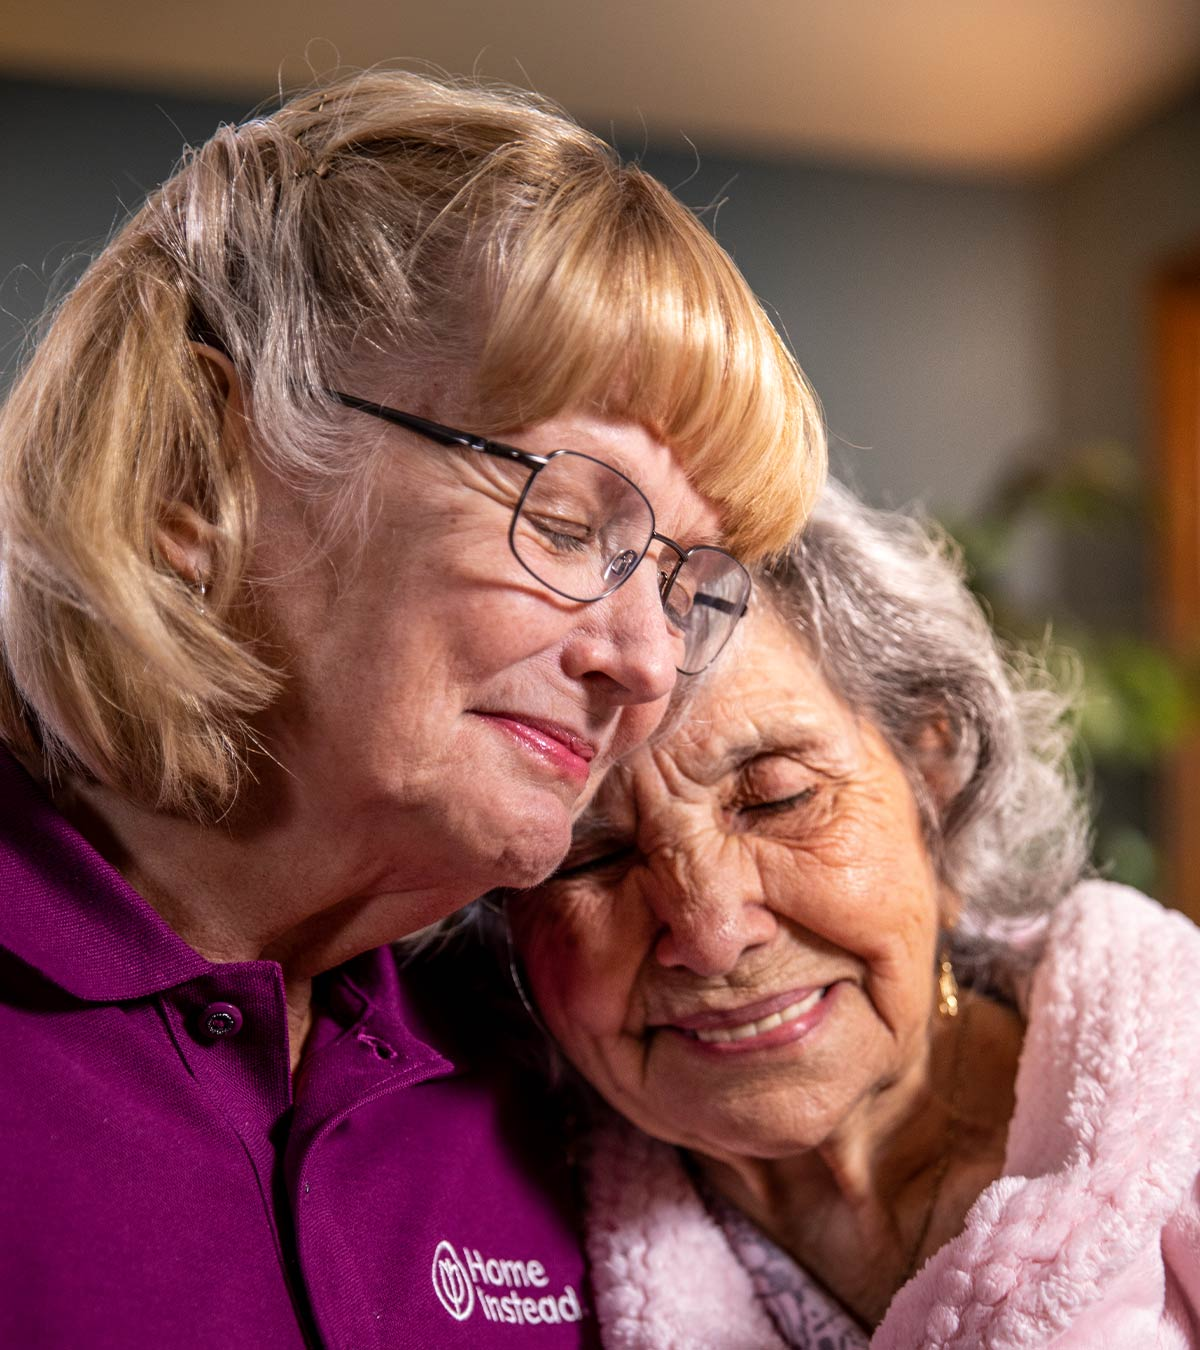 Home Instead CAREGiver and senior sitting together compassionately